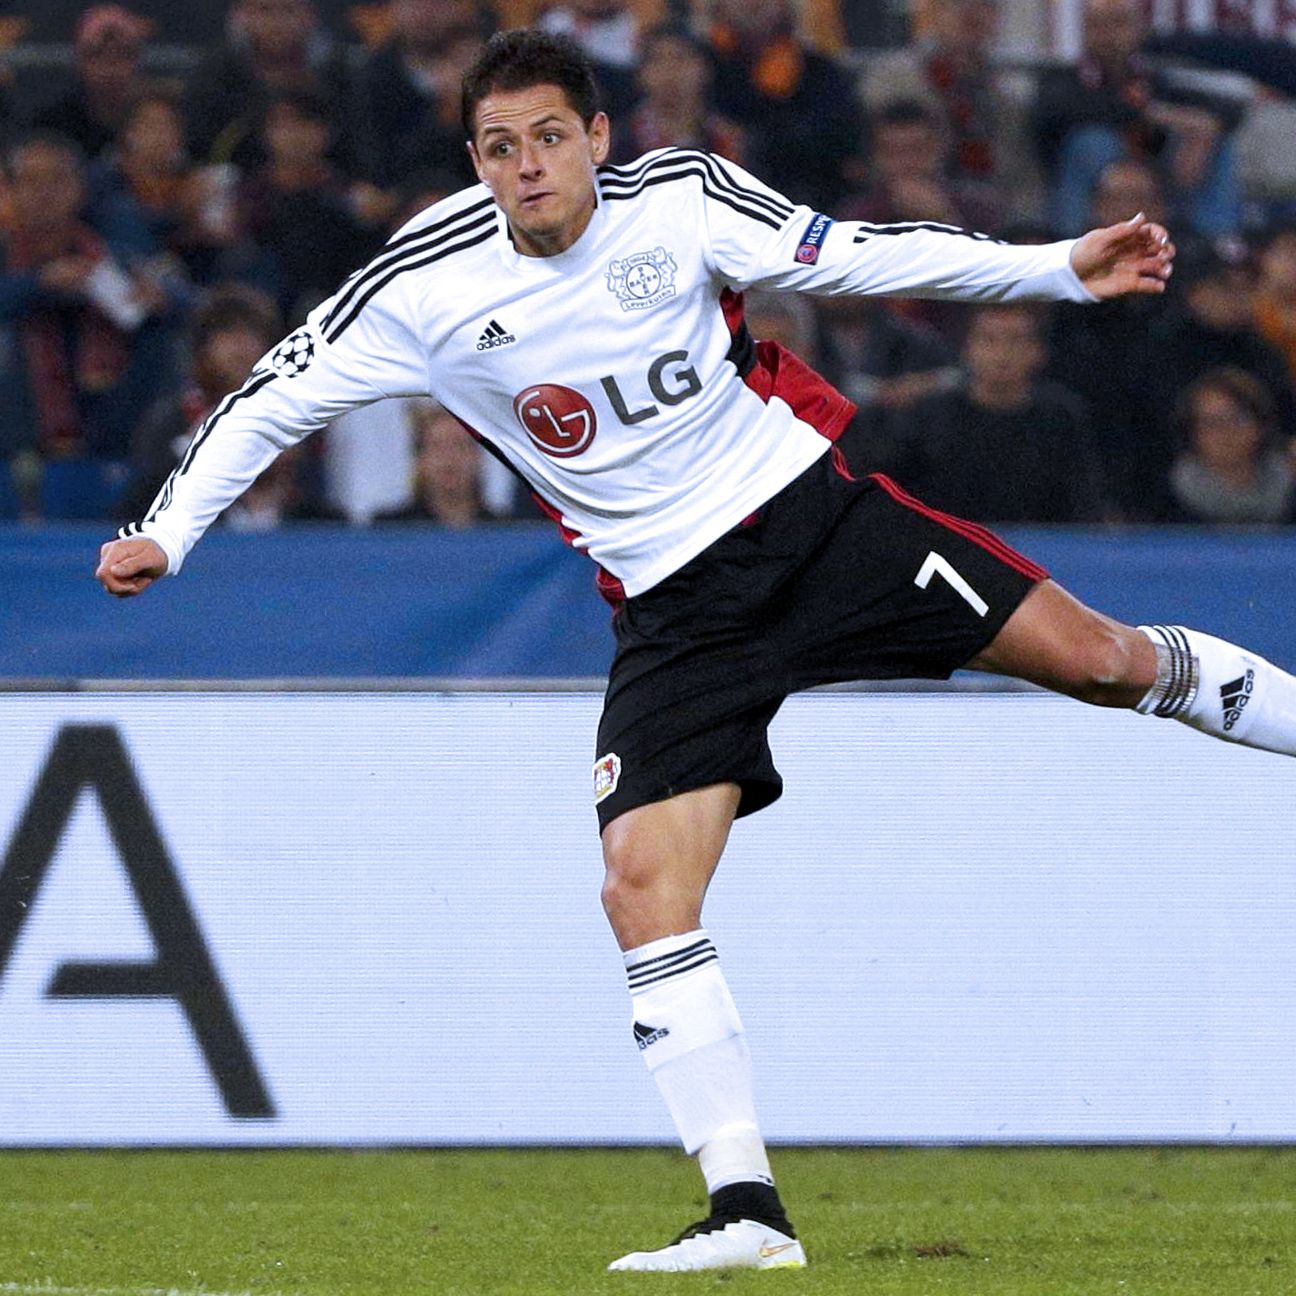 Javier Hernandez's blistering start at Leverkusen makes him the easy choice to lead Mexico's attack.